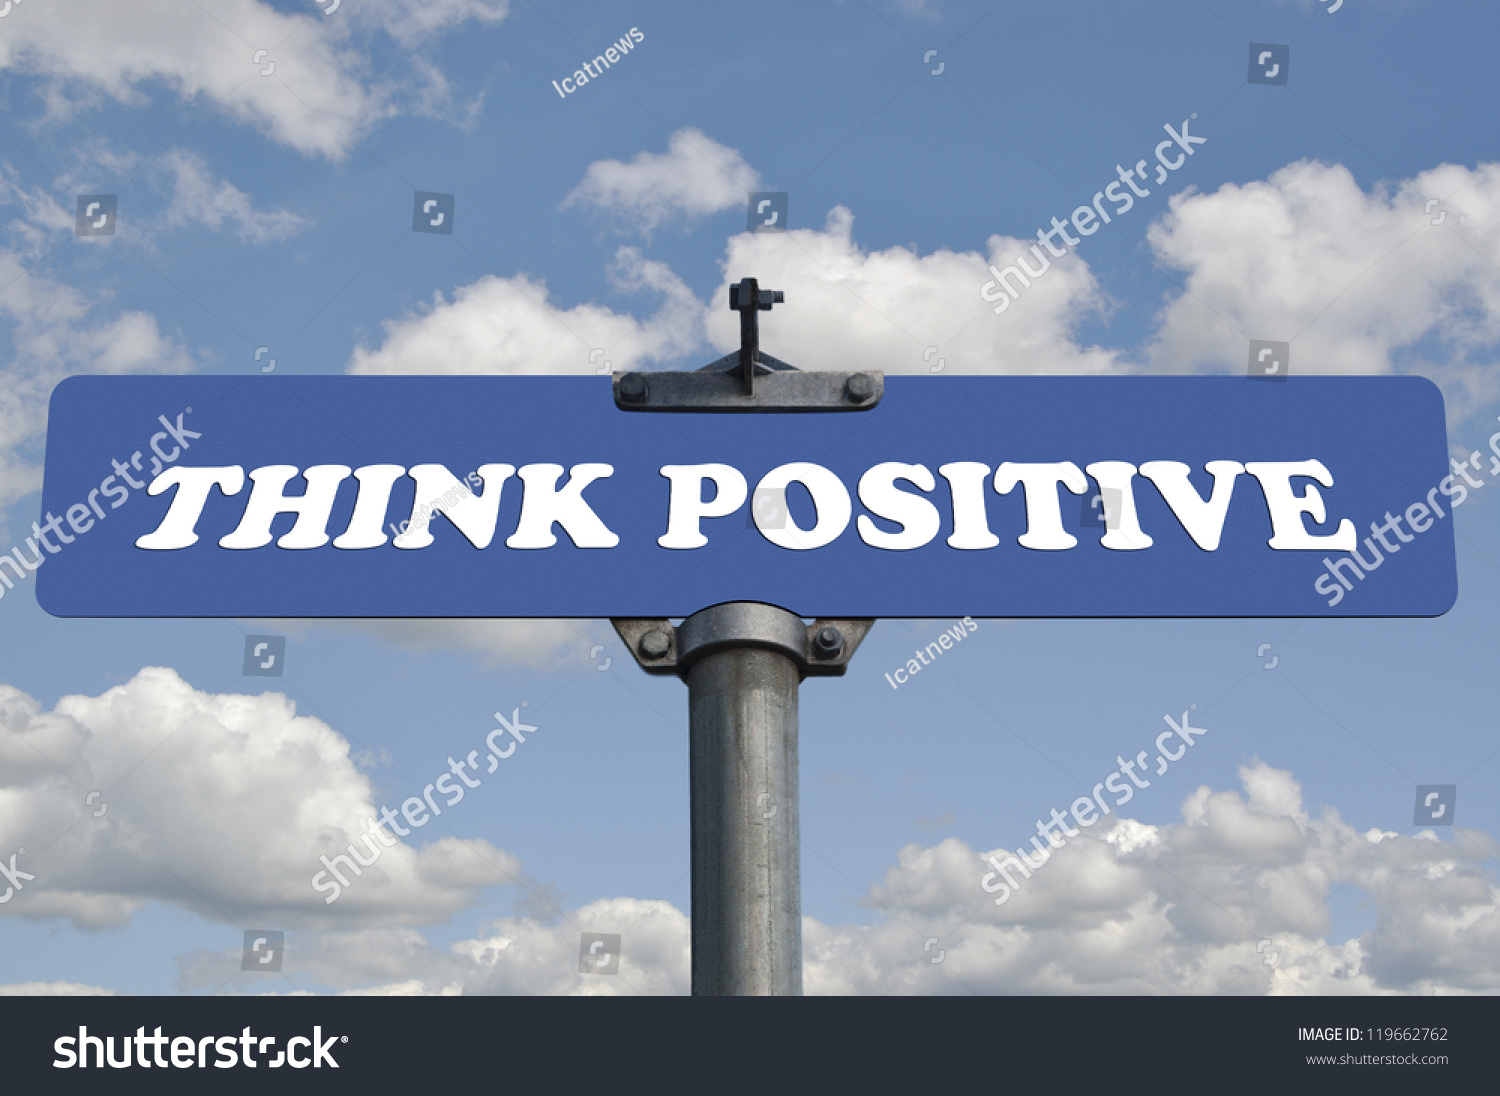 think positive road sign stock photo 119662762 shutterstock